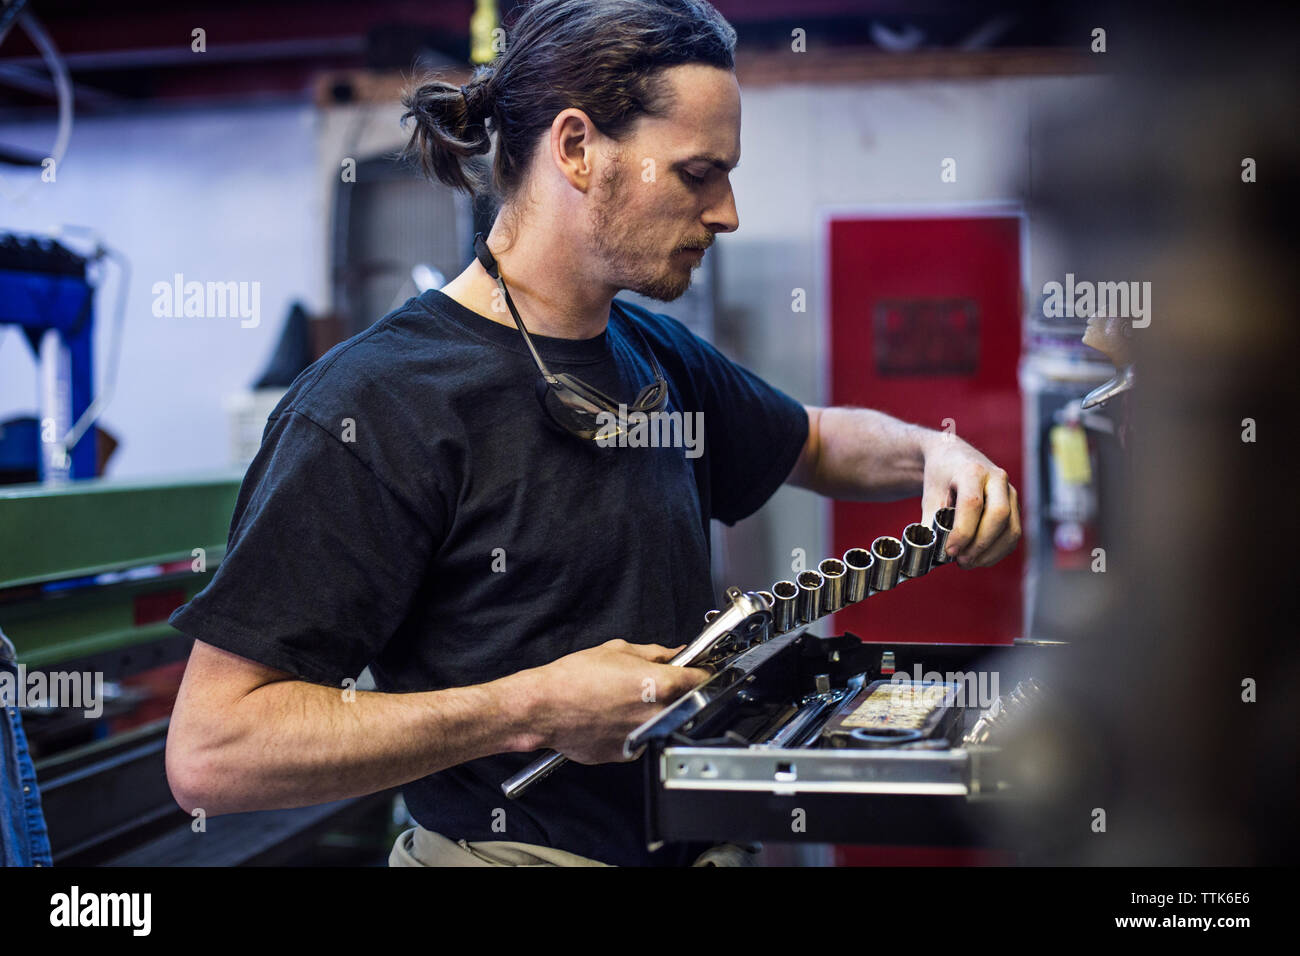 Mechanic holding hand tool at auto repair shop - Stock Image